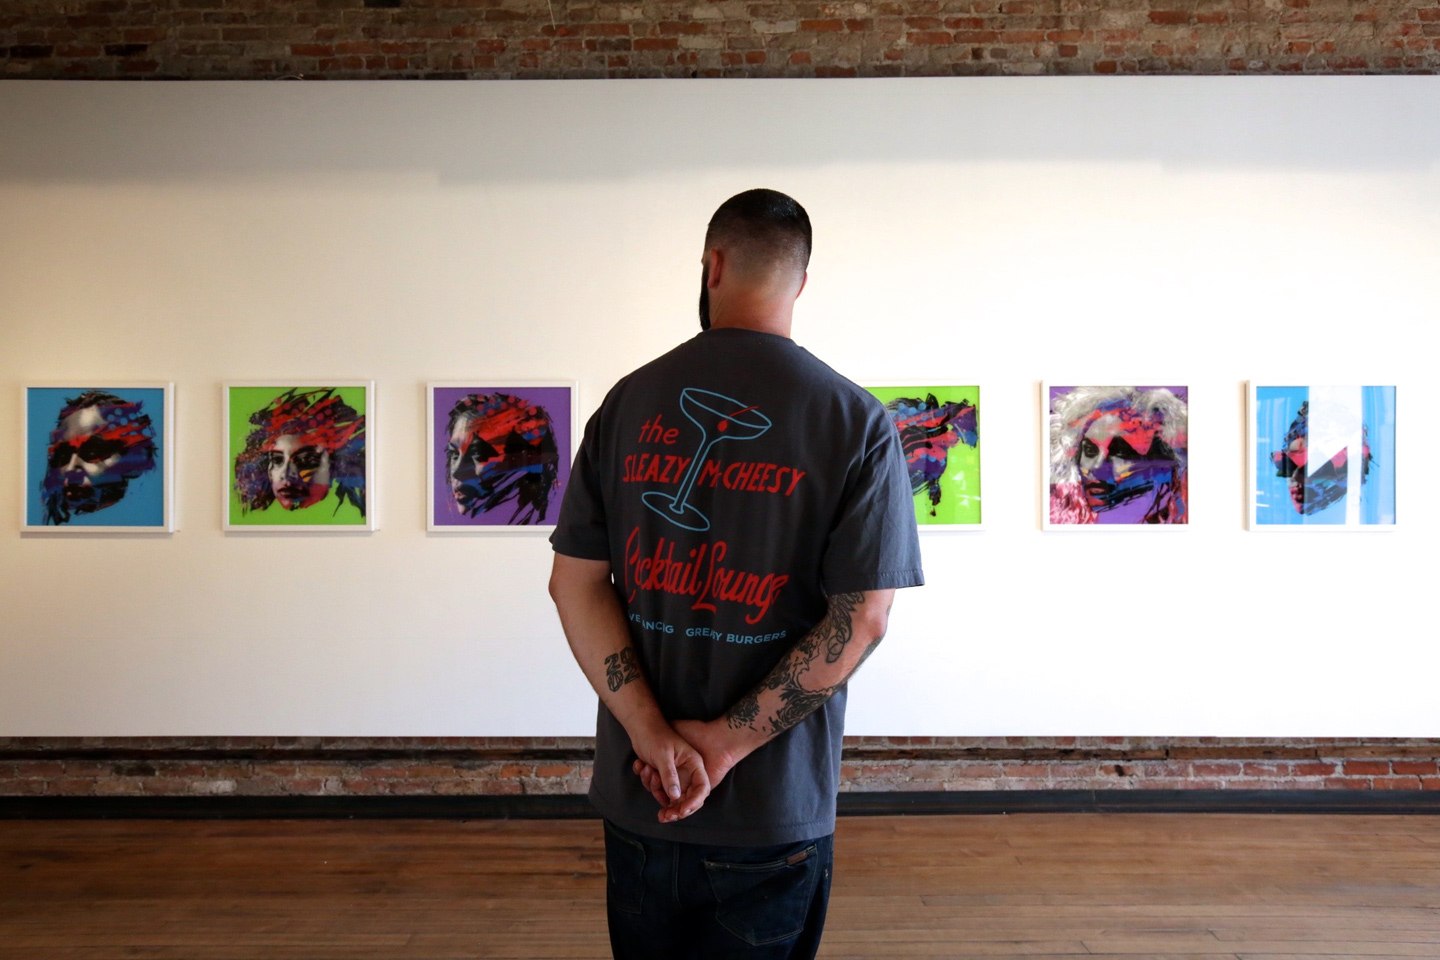 the-fourth-walls-melbourne-art-street-art-exhibition-askew-one-post-colonial-beastman-seminatural-inner-state-gallery-detroit-1xrun3